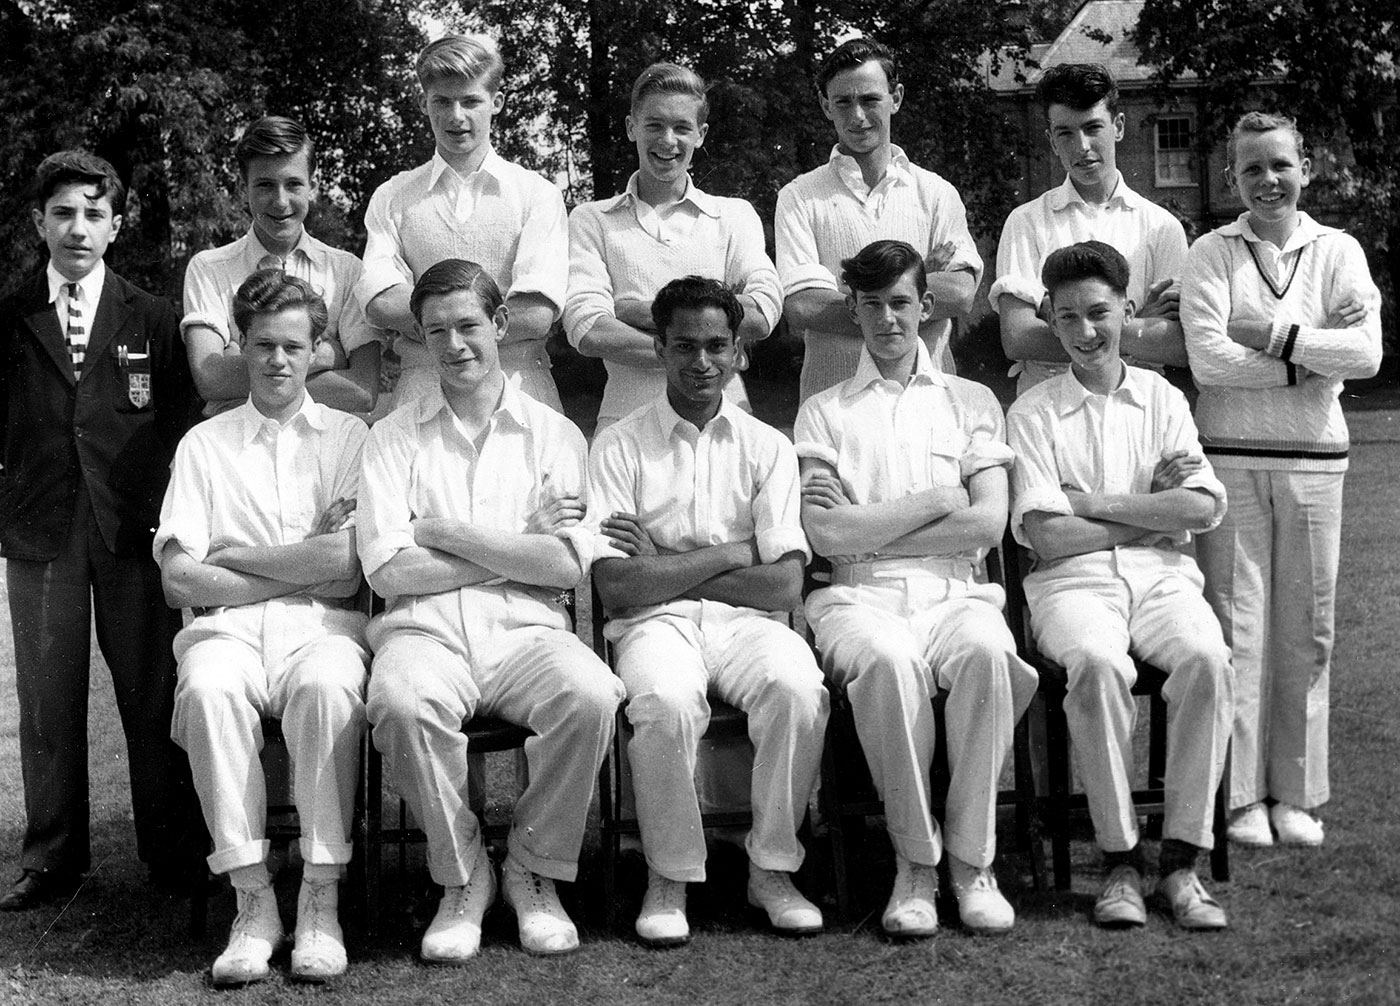 Zulfikar Ghose (sitting, third from left) was the only South Asian in his school team